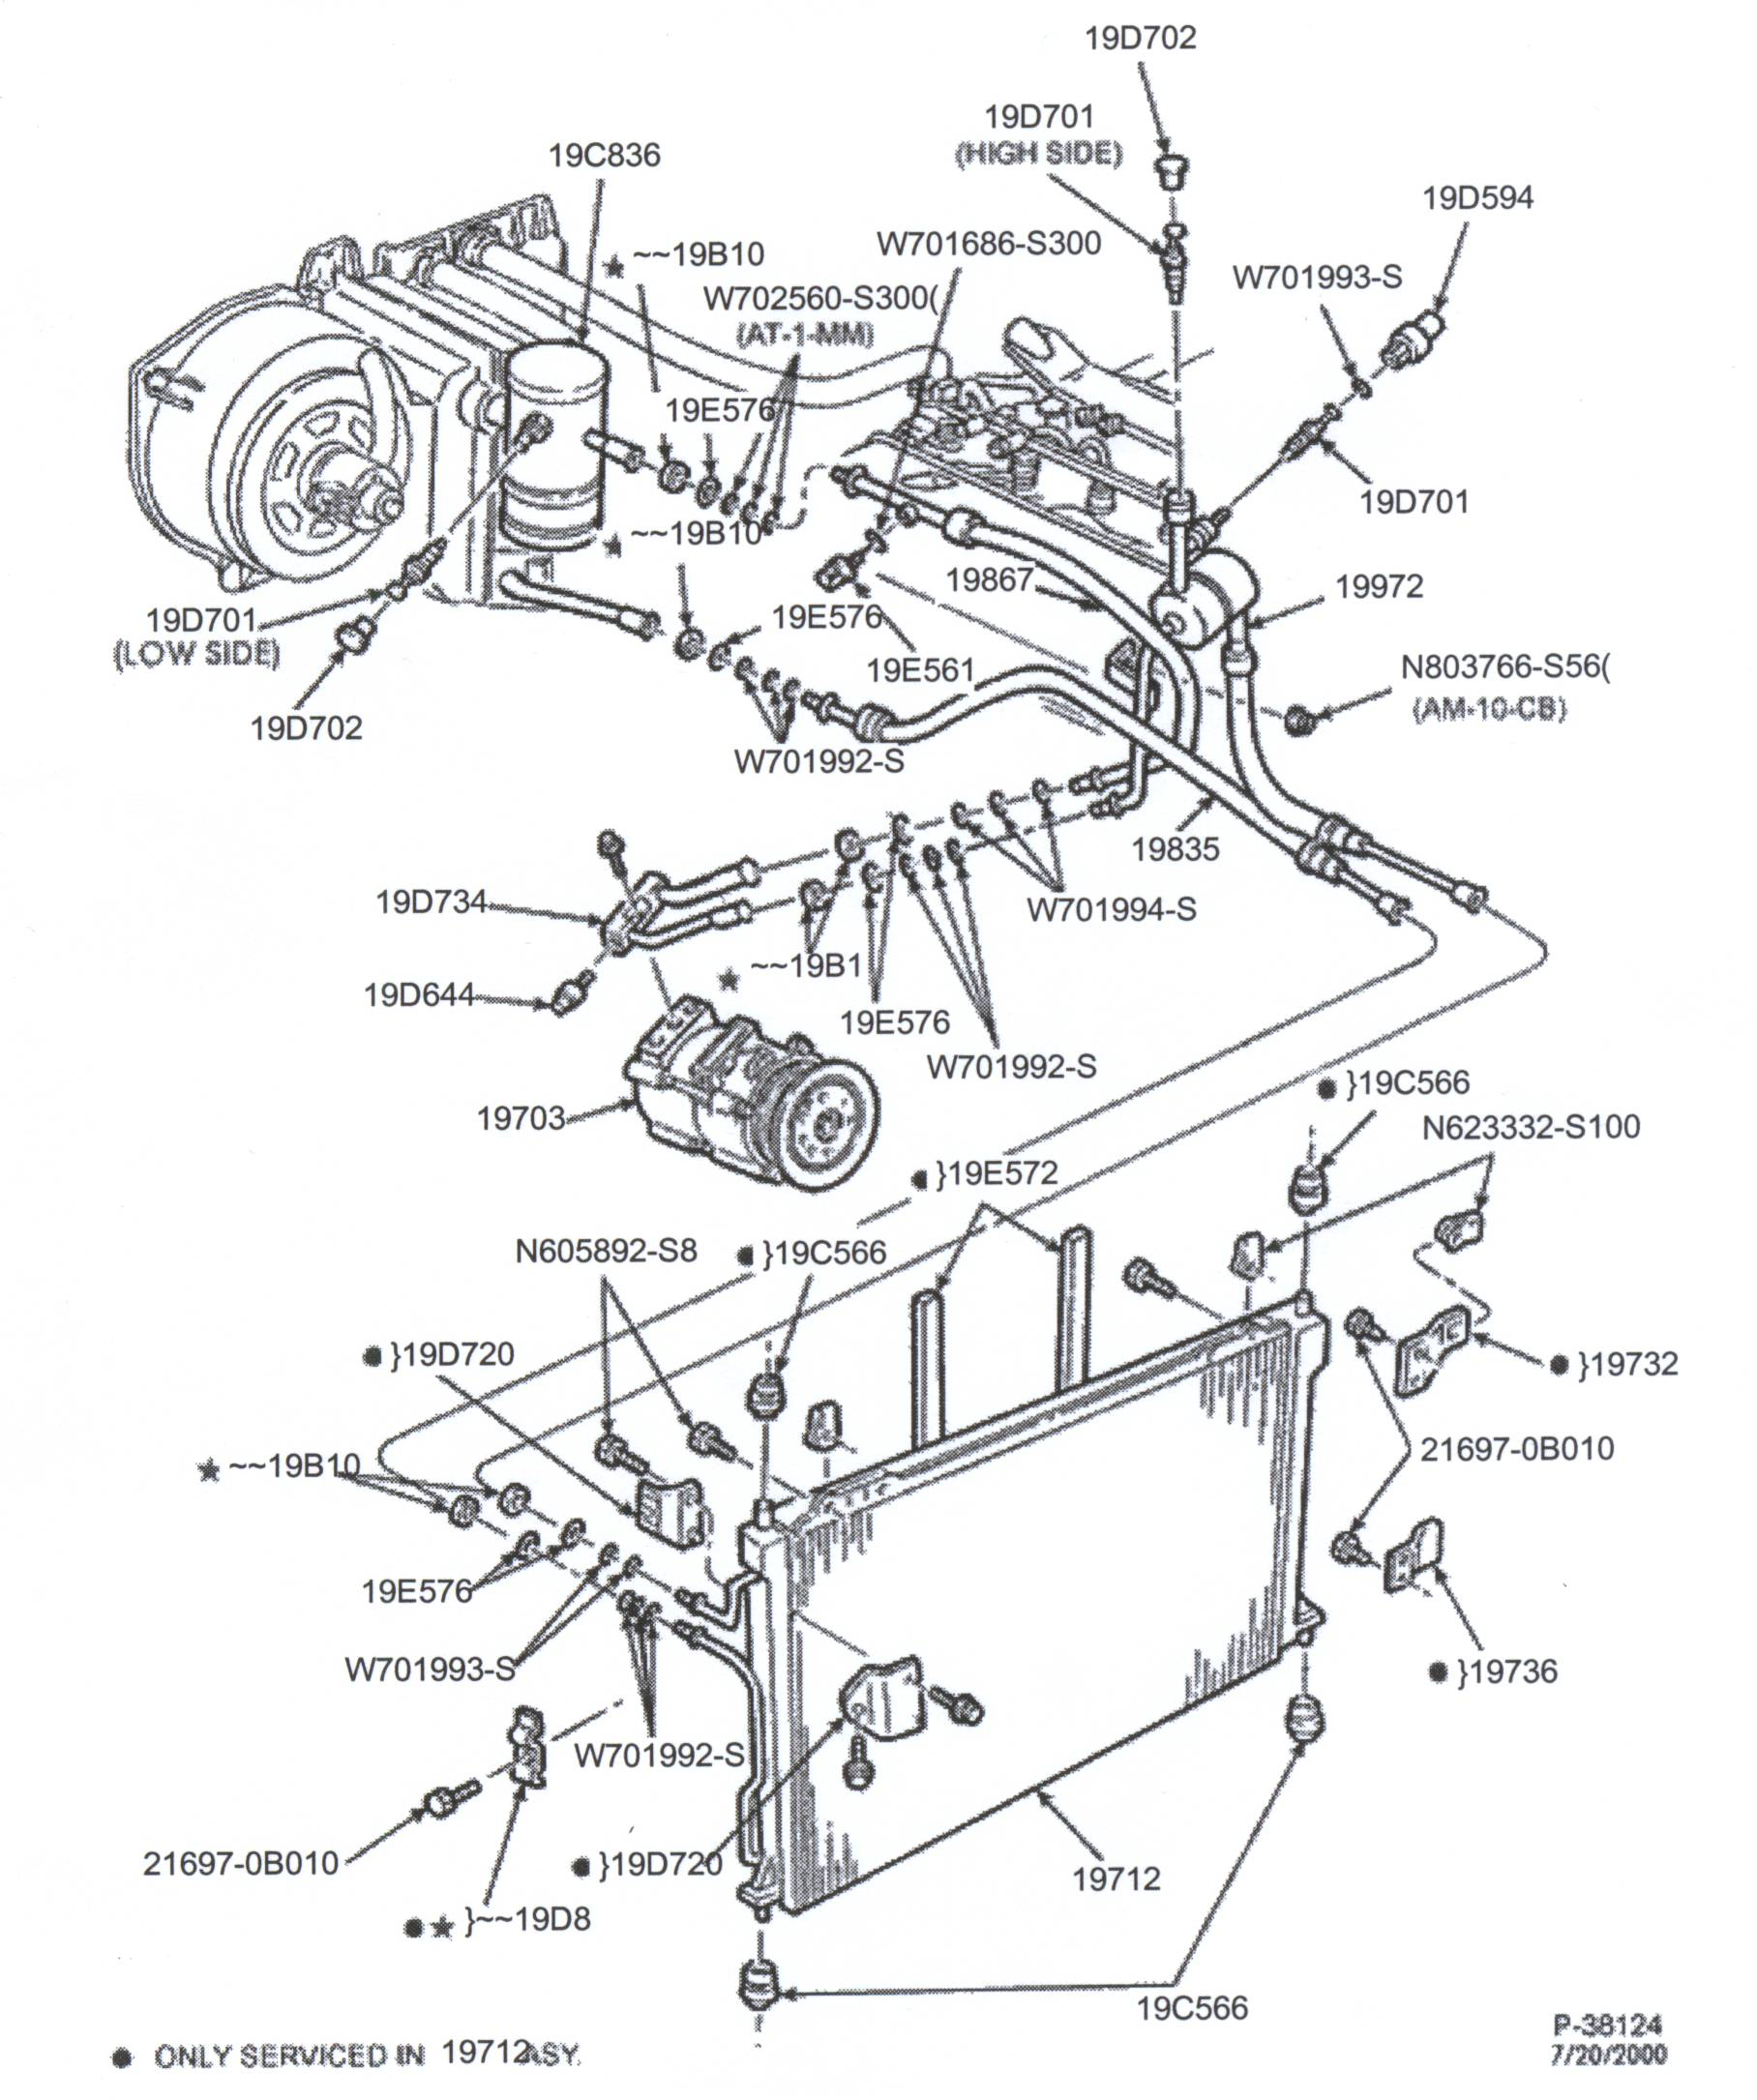 RepairGuideContent in addition Ankh tattoo moreover 94 Lincoln Town Car Fuel Filter also 1999 Explorer Parts Diagram 1999 Ford Explorer Parts Manual Within 1999 Ford Explorer Engine Diagram additionally 1999 Silverado Fuse Box Behind Insturment Panel. on 2003 mercury grand marquis black